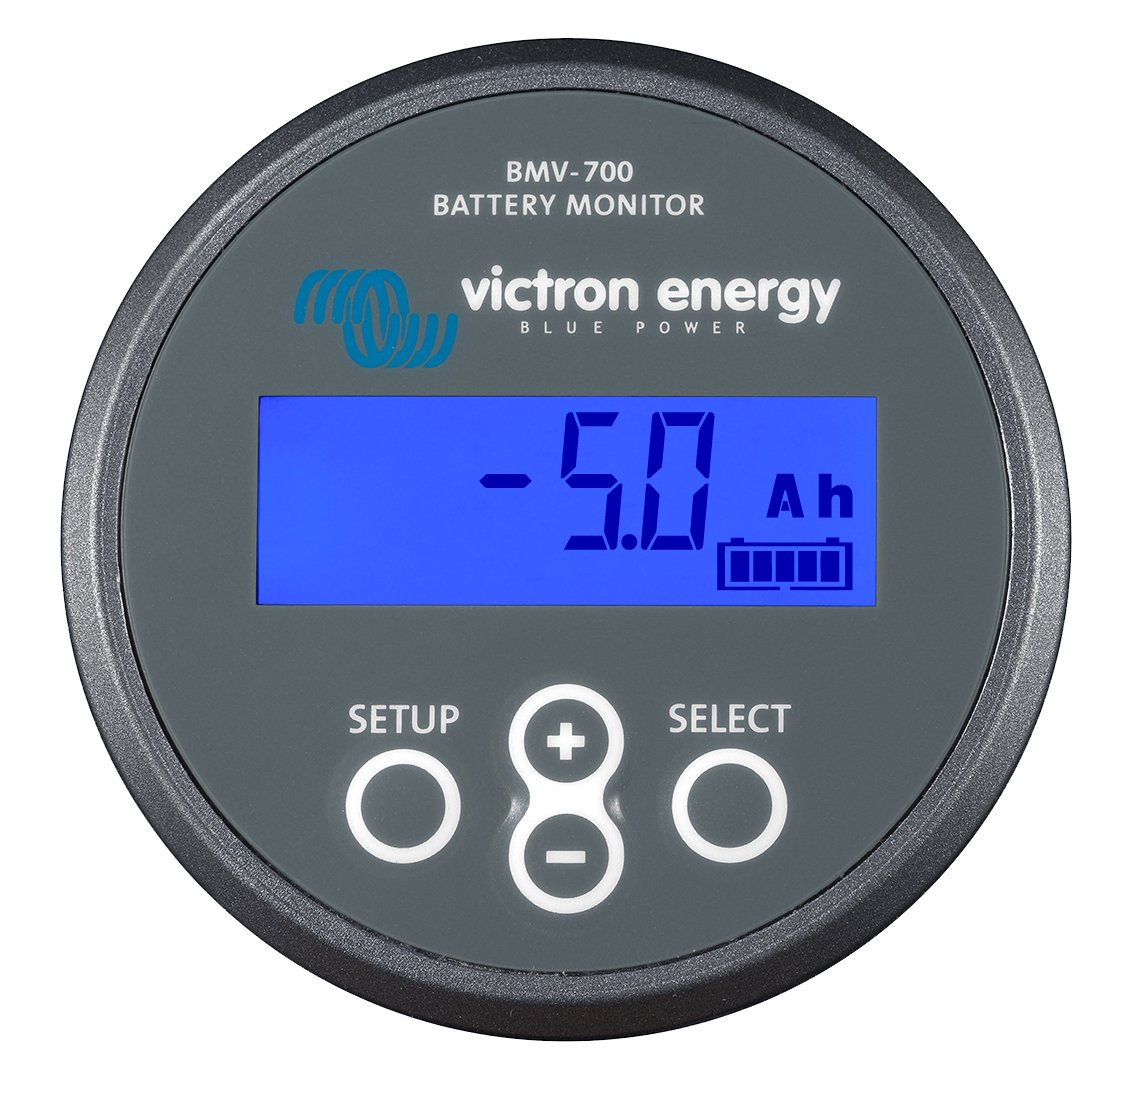 BMV-700 Battery Monitor – Victron Energy Our battery monitor of choice for the bus (we purchased this on our own).